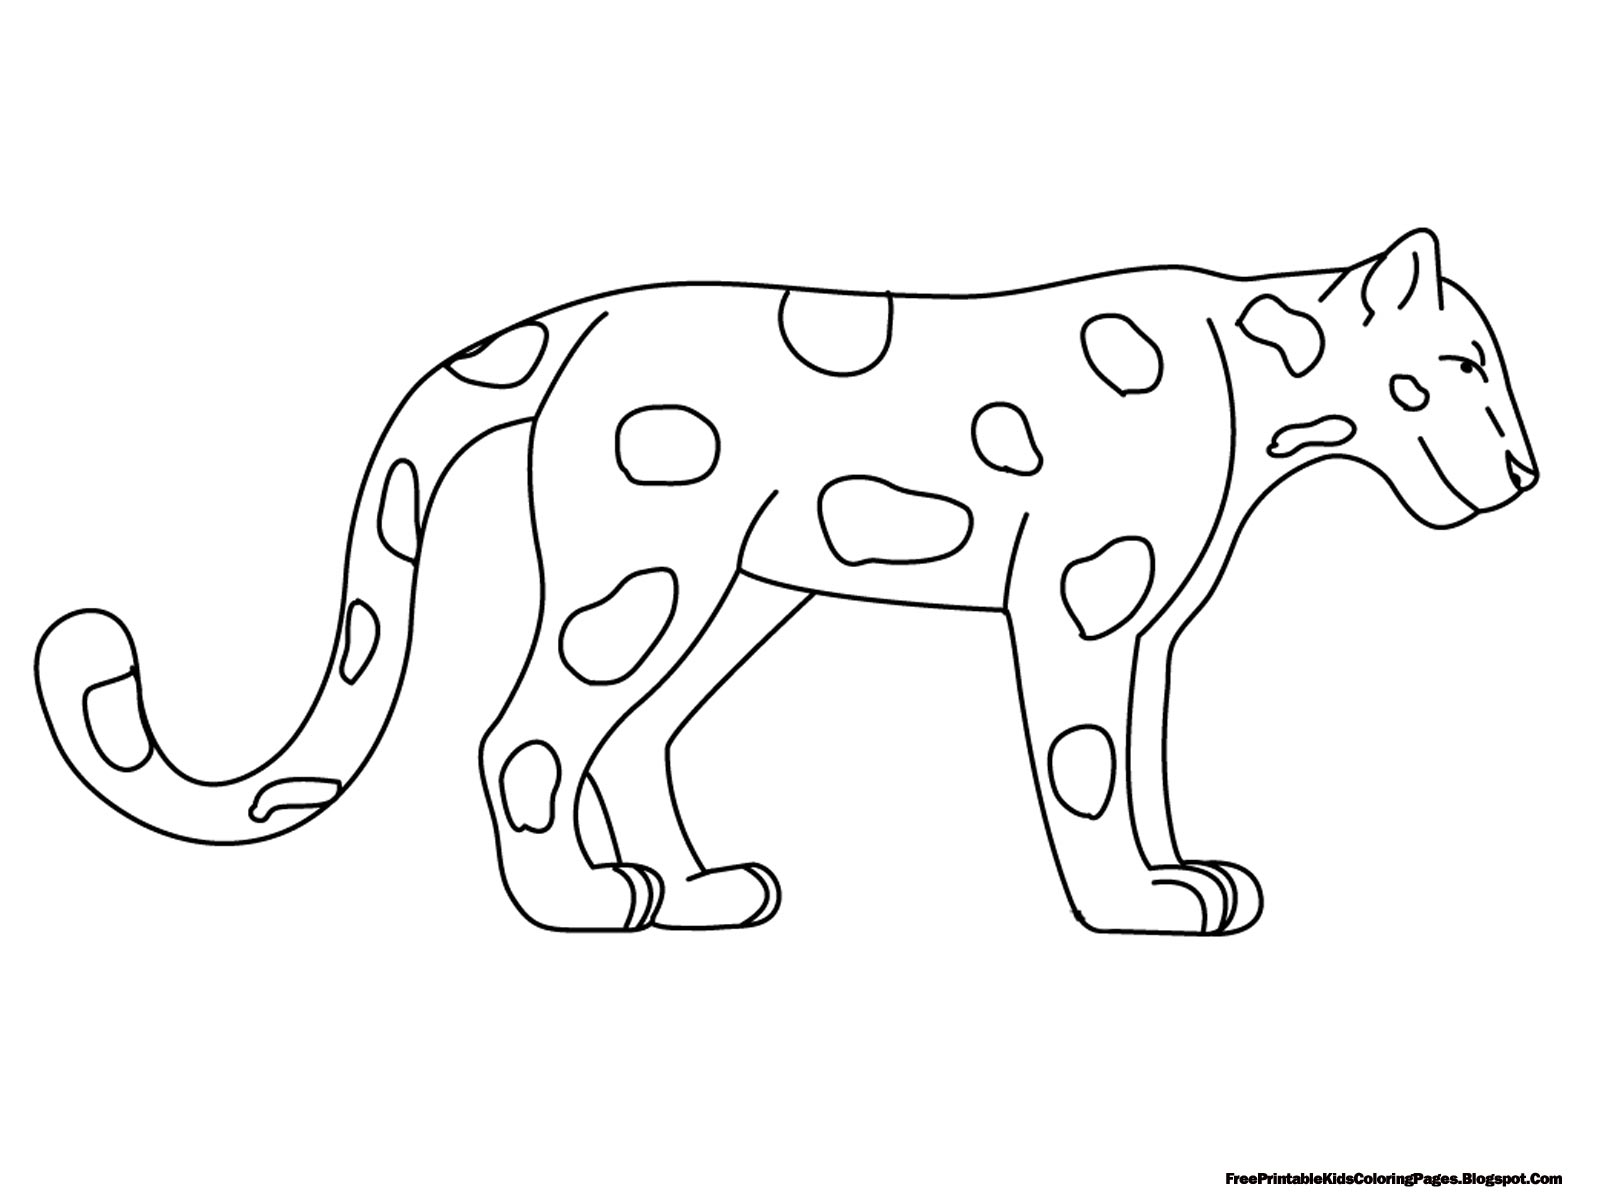 forest animal coloring pages forest animals coloring pages getcoloringpagescom forest pages animal coloring